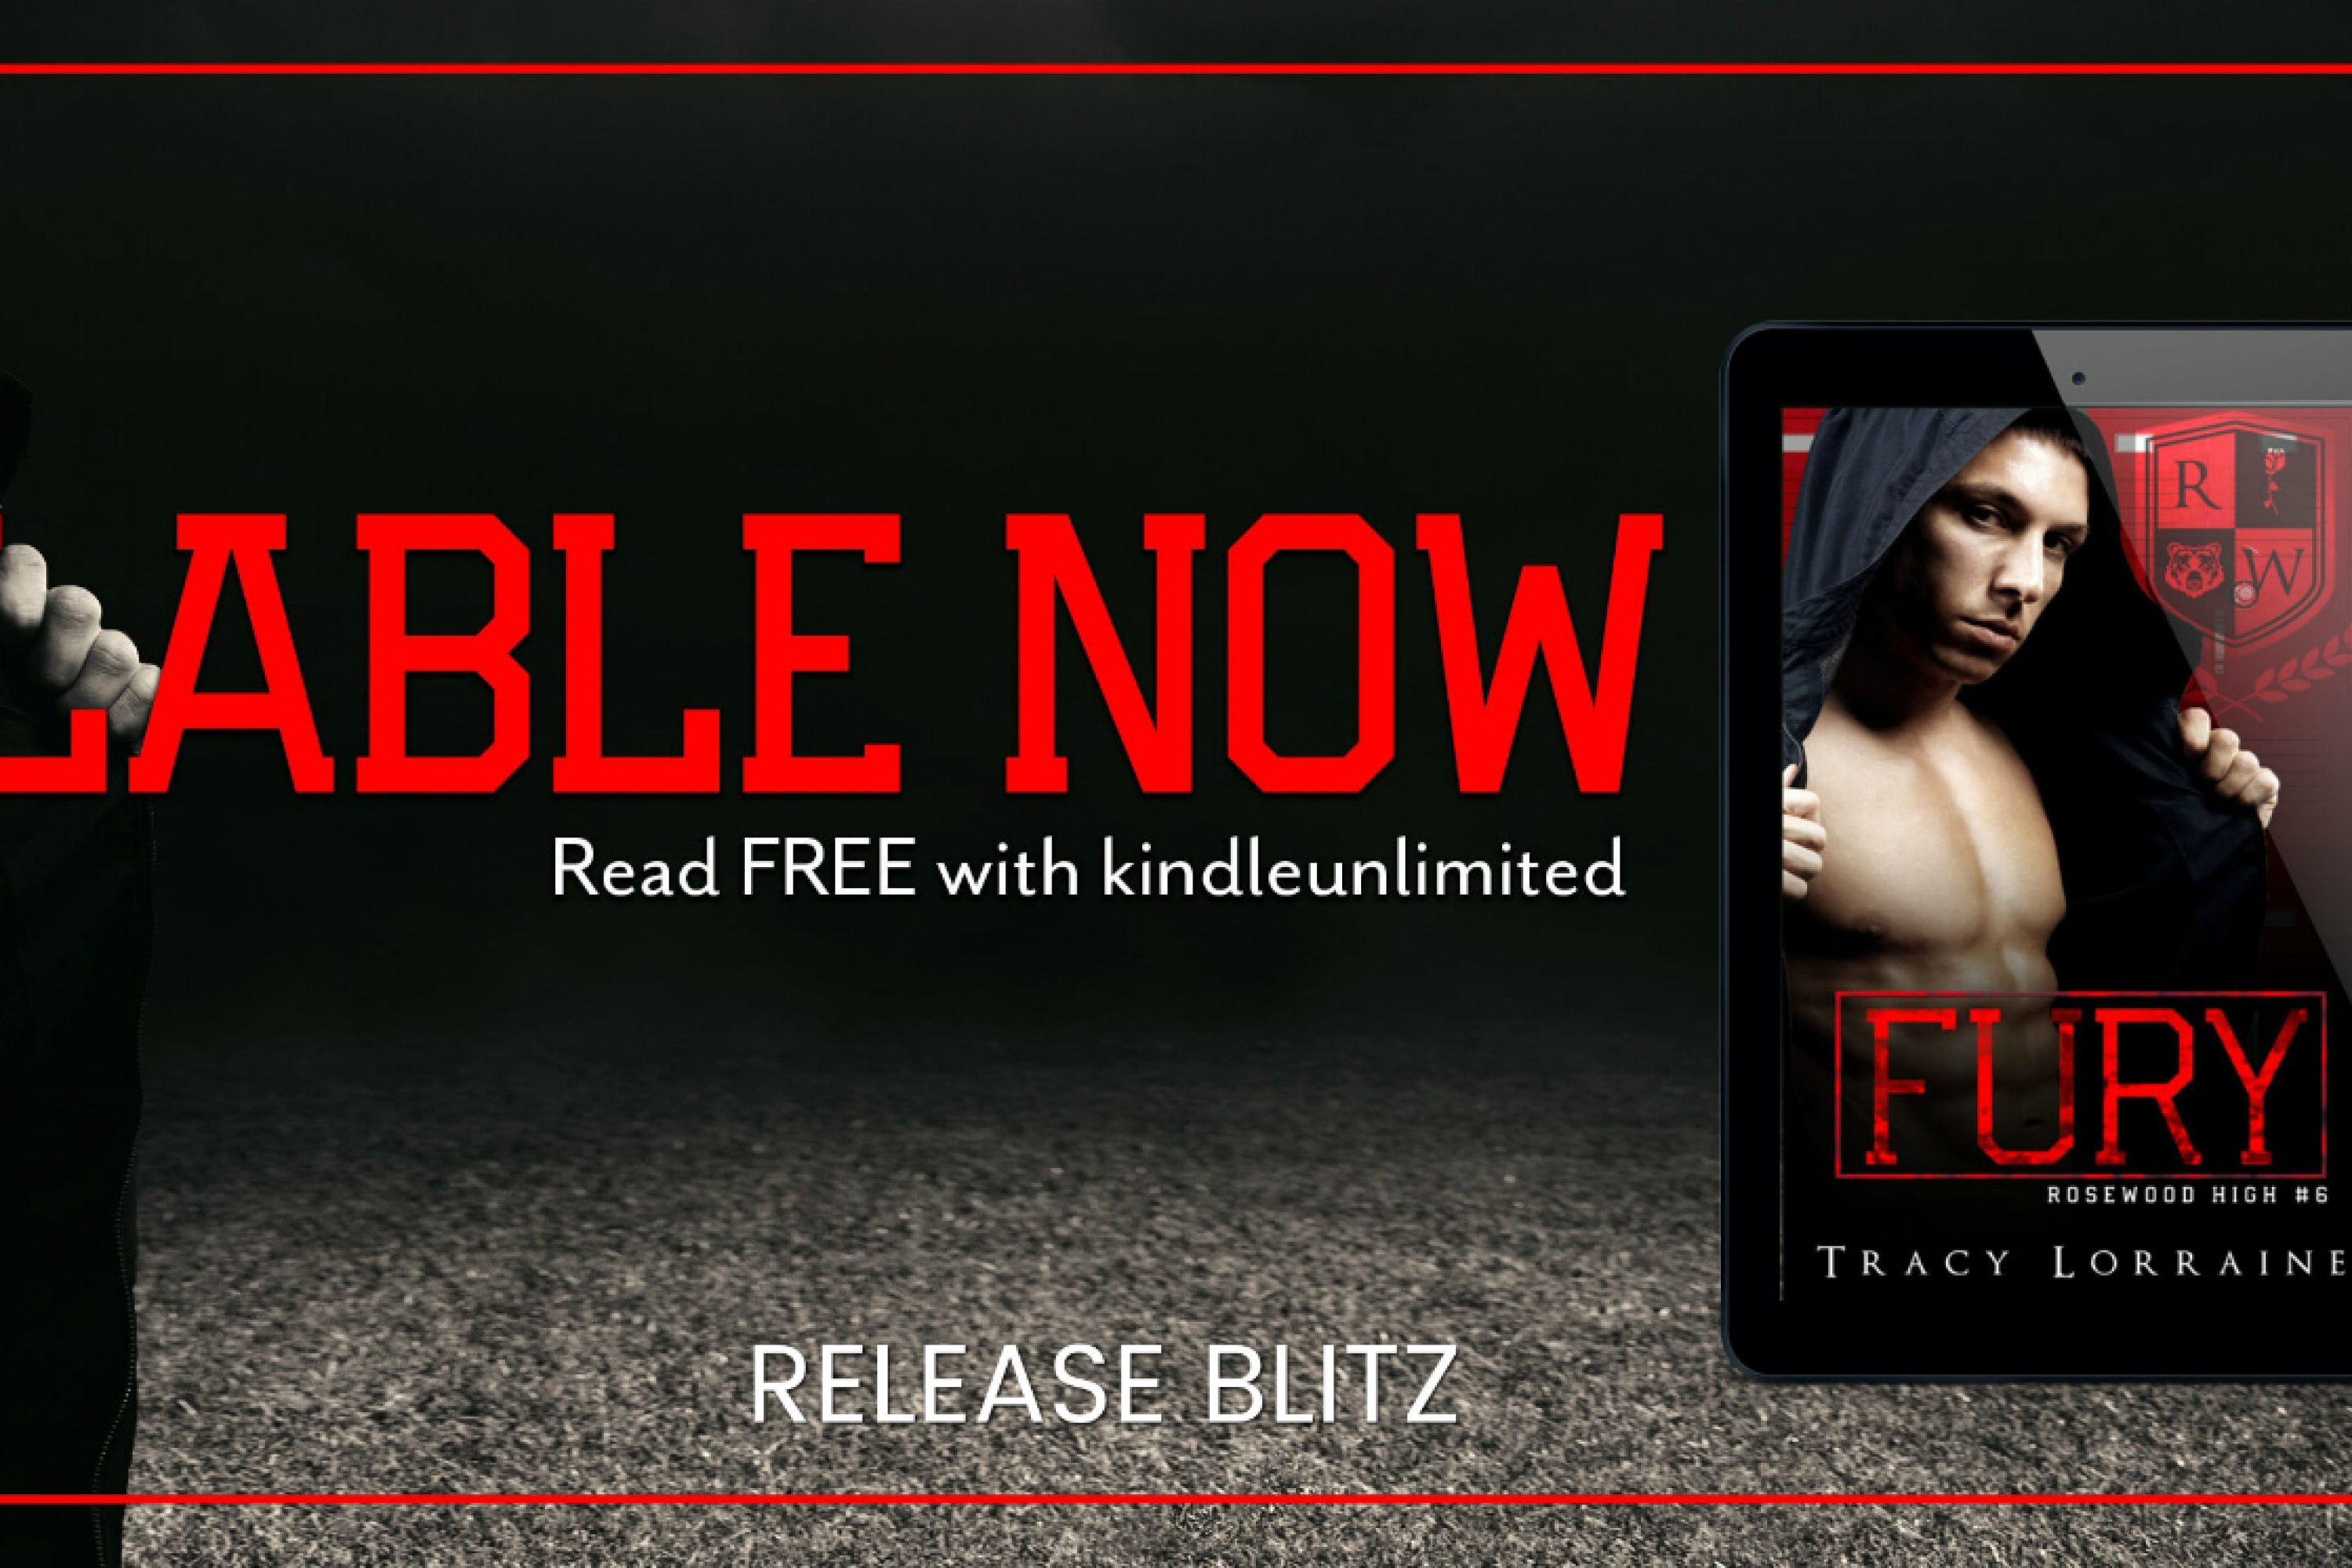 Release Blitz: Fury by Tracy Lorraine